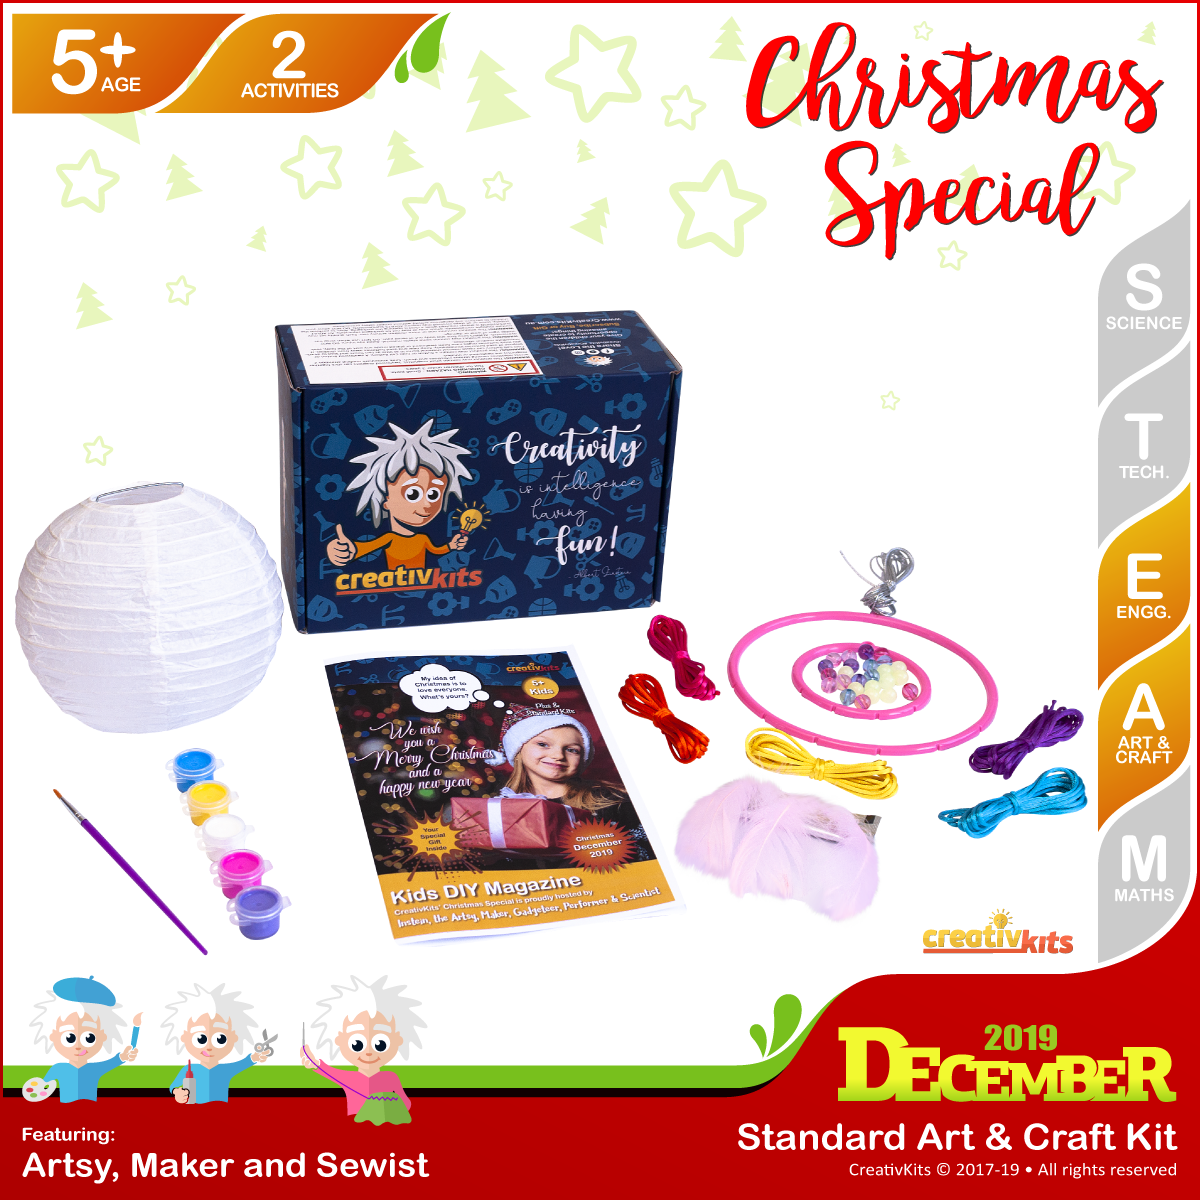 December Standard Art & Craft Kit • Age 5 plus • Glow In Dark Dreamcatcher and Painted Xmas Lantern